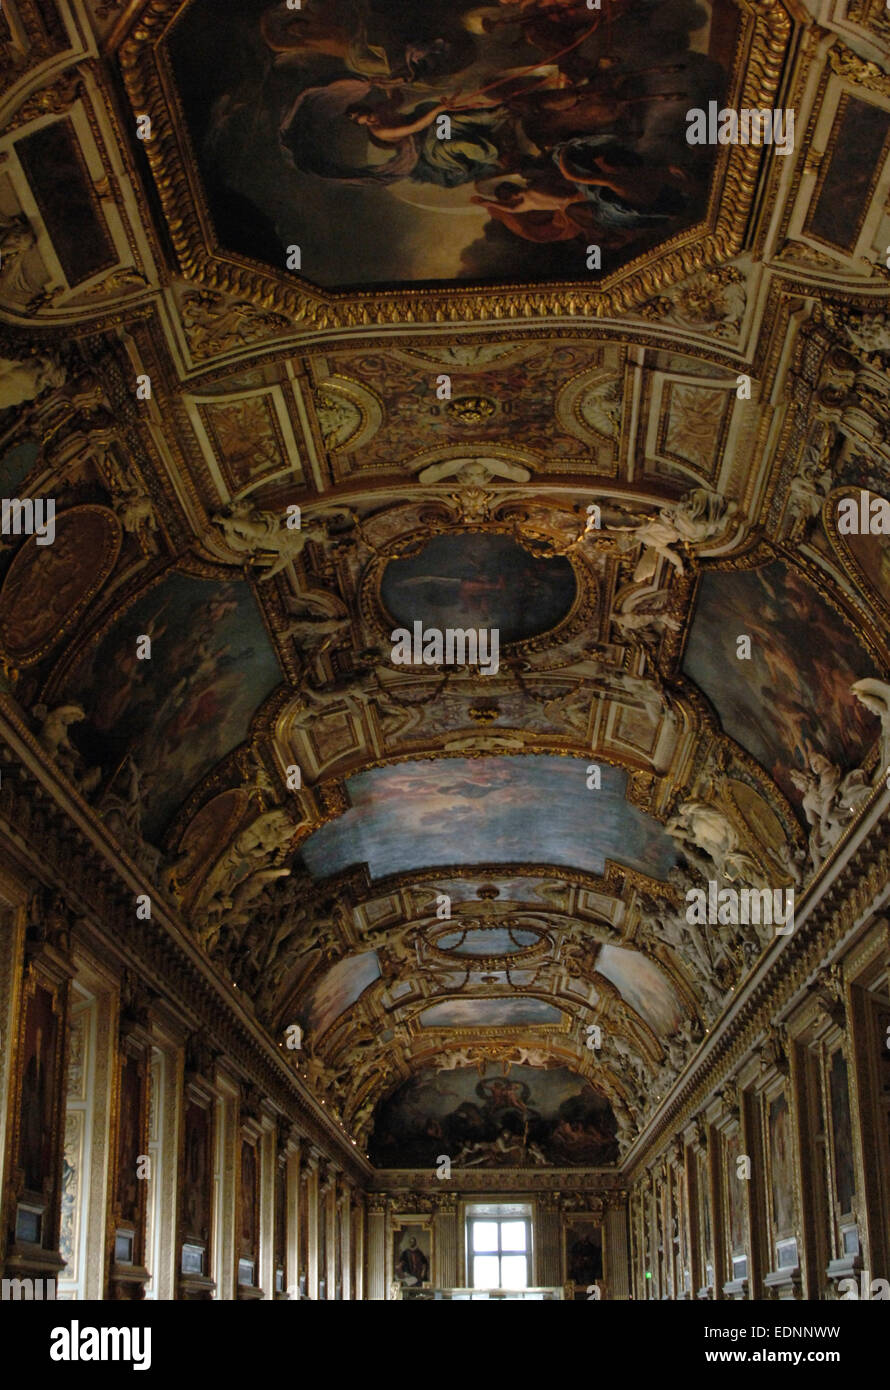 France. Paris. Louvre. Apollo Gallery.  Decorated ceiling. - Stock Image